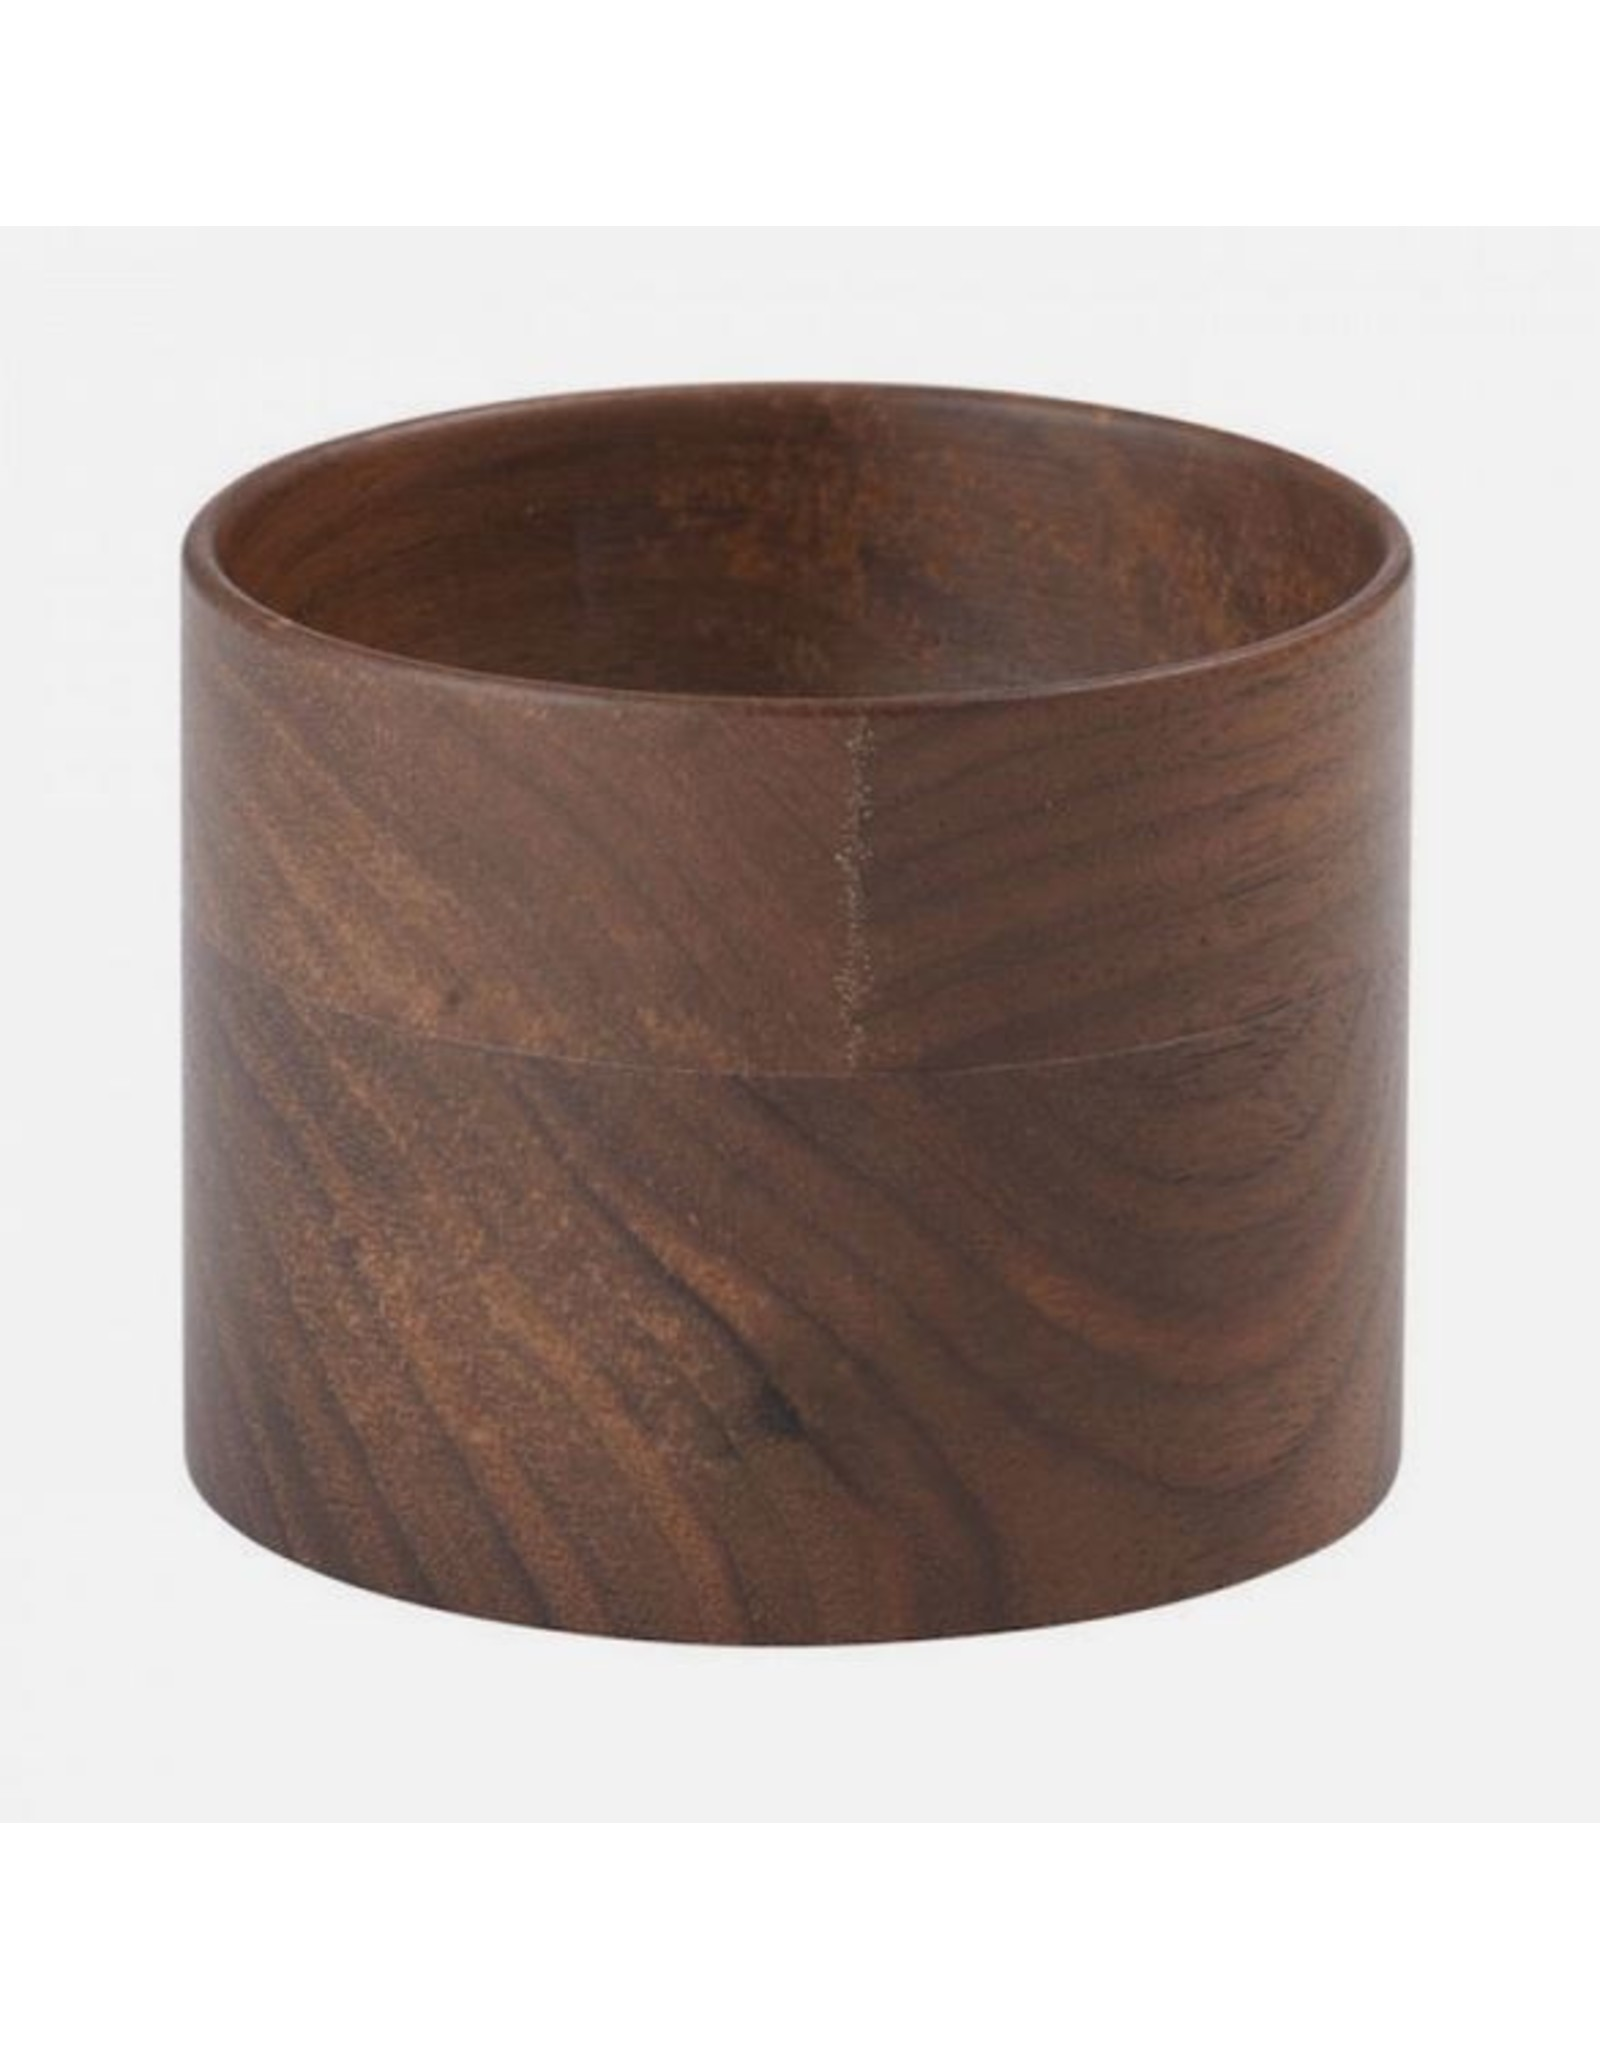 CrushGrind Florence Walnut Pinch Bowl D7x5.5cm